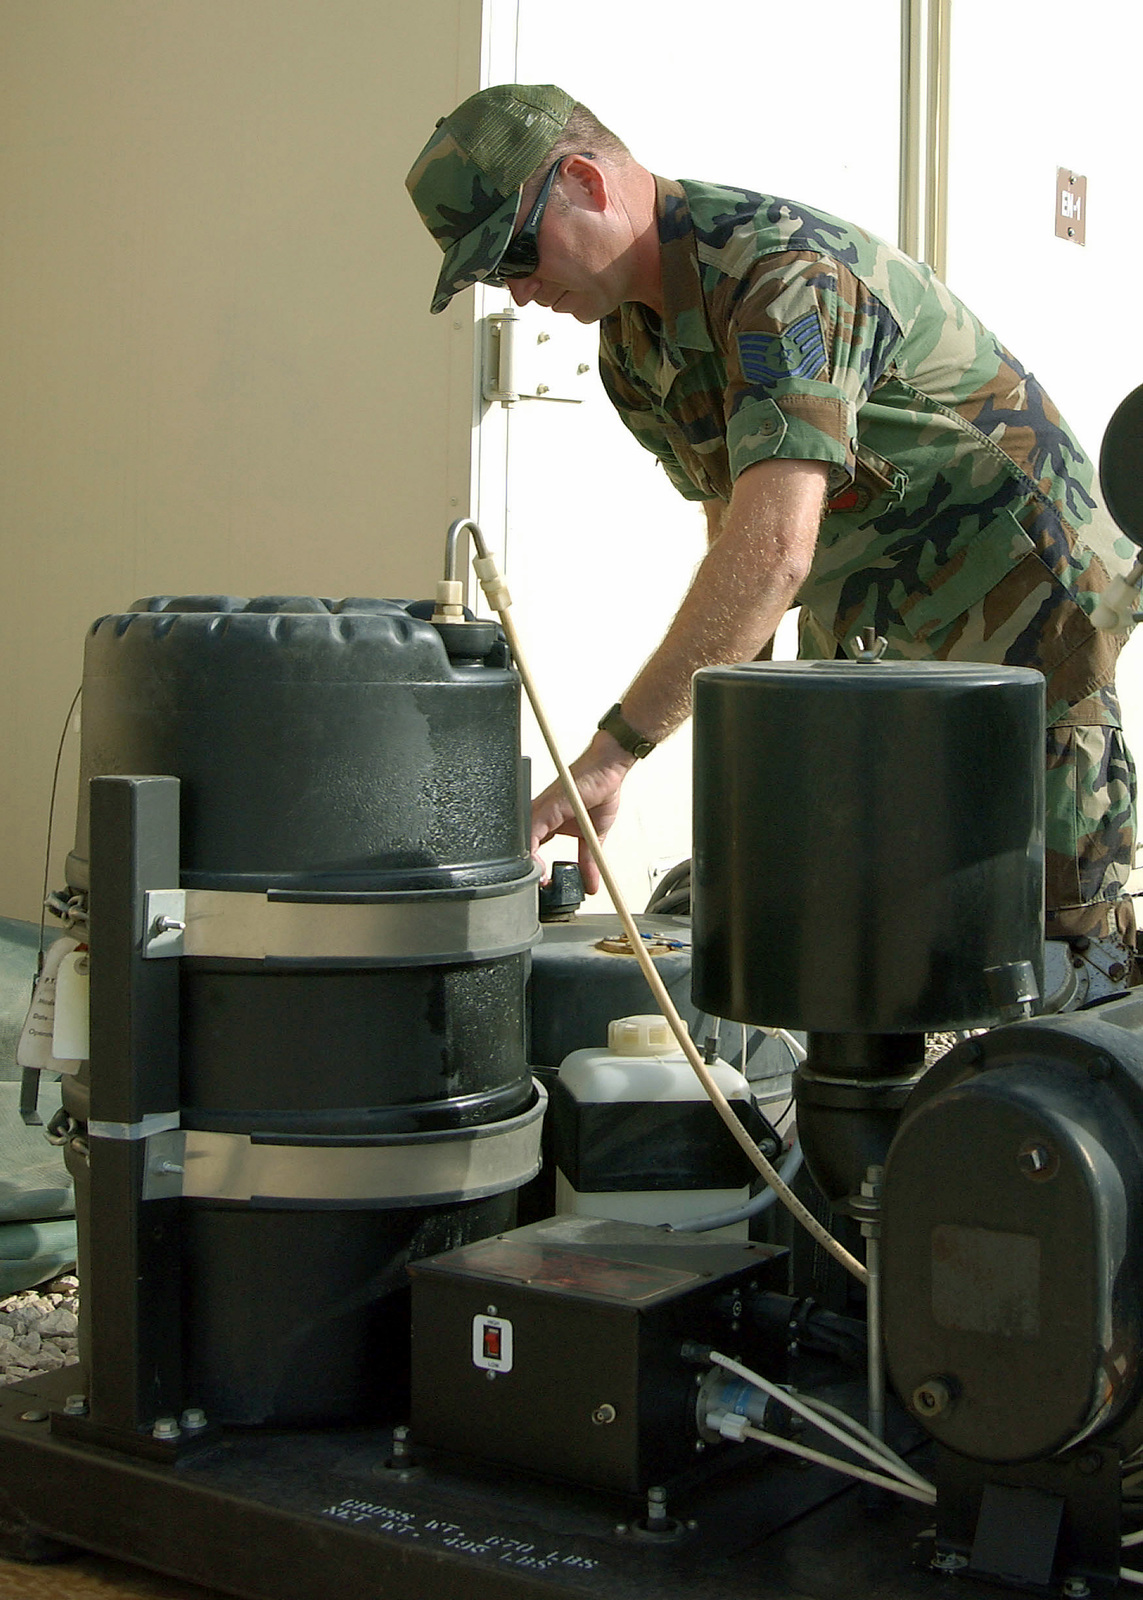 """US Air Force (USAF) Technical Sergeant (TSGT) Tim Clepper, """"Bugman,"""" tends his Ultra Low Volume Mosquito Fogger in the deployed Entomology shop at Incirlik Air Base (AB), Turkey in support of Operation NORTHERN WATCH"""